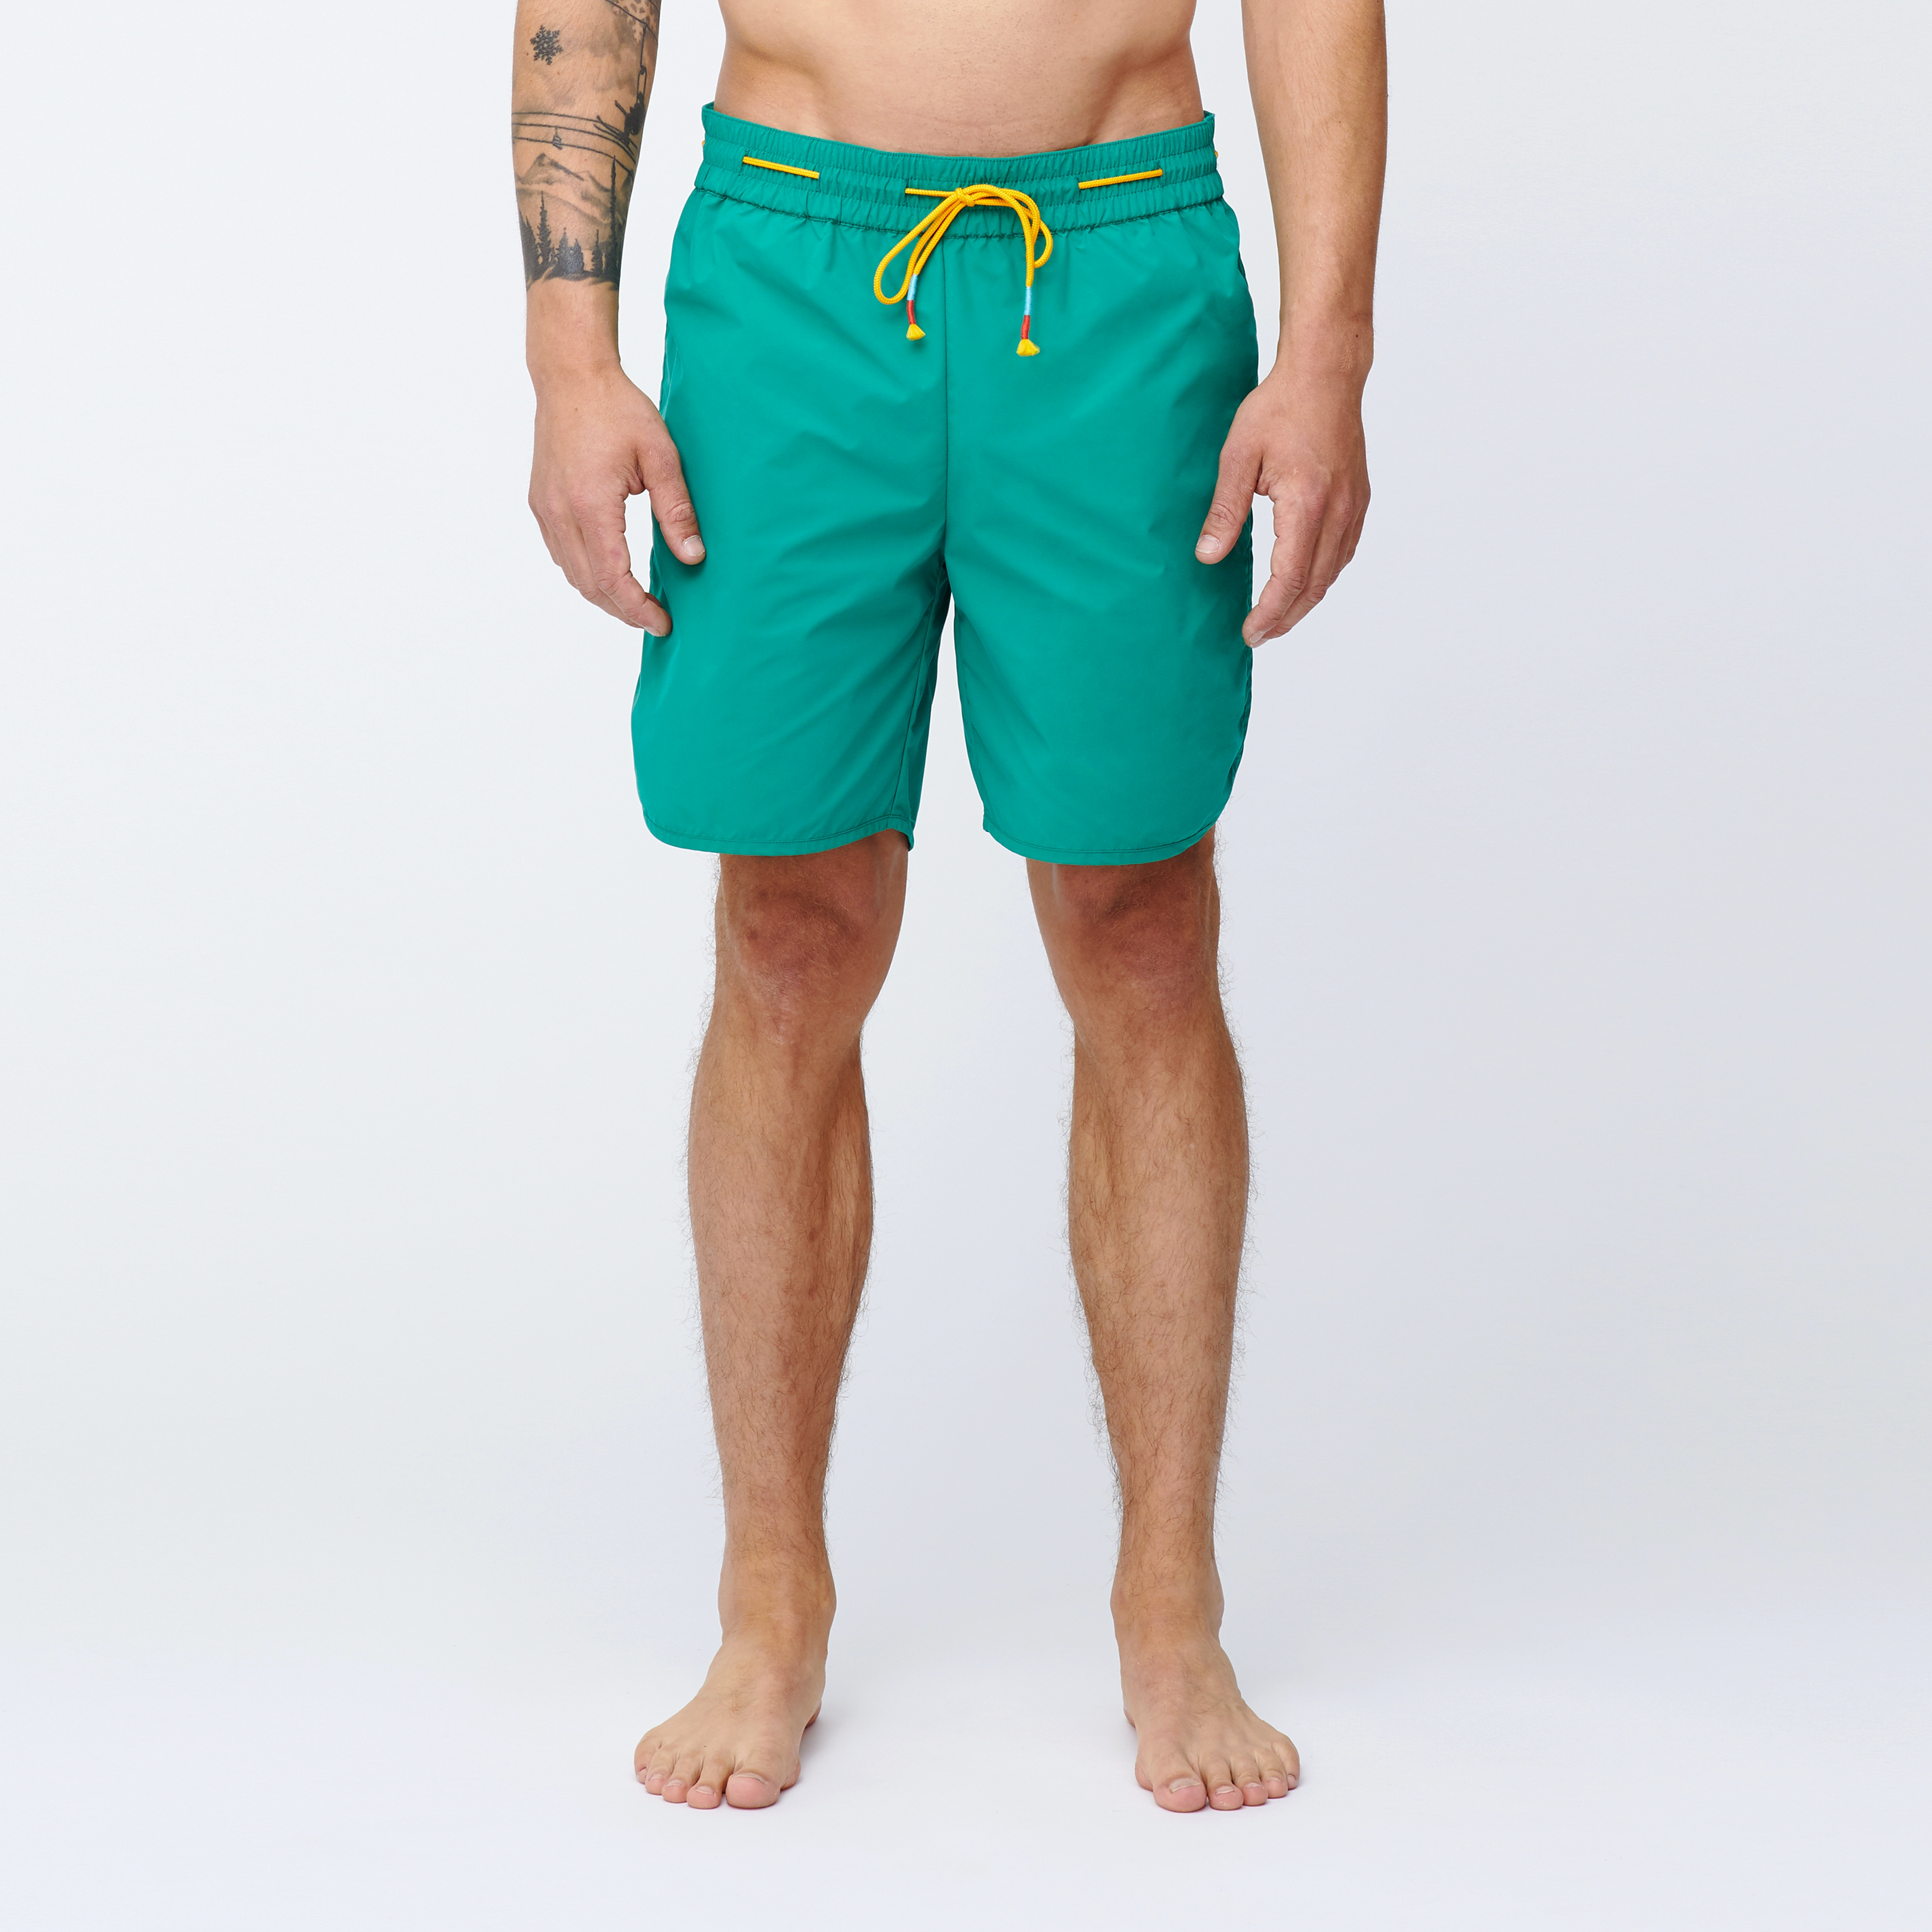 Thaddeus x Bonobos E-Waist Swim Trunks 7""